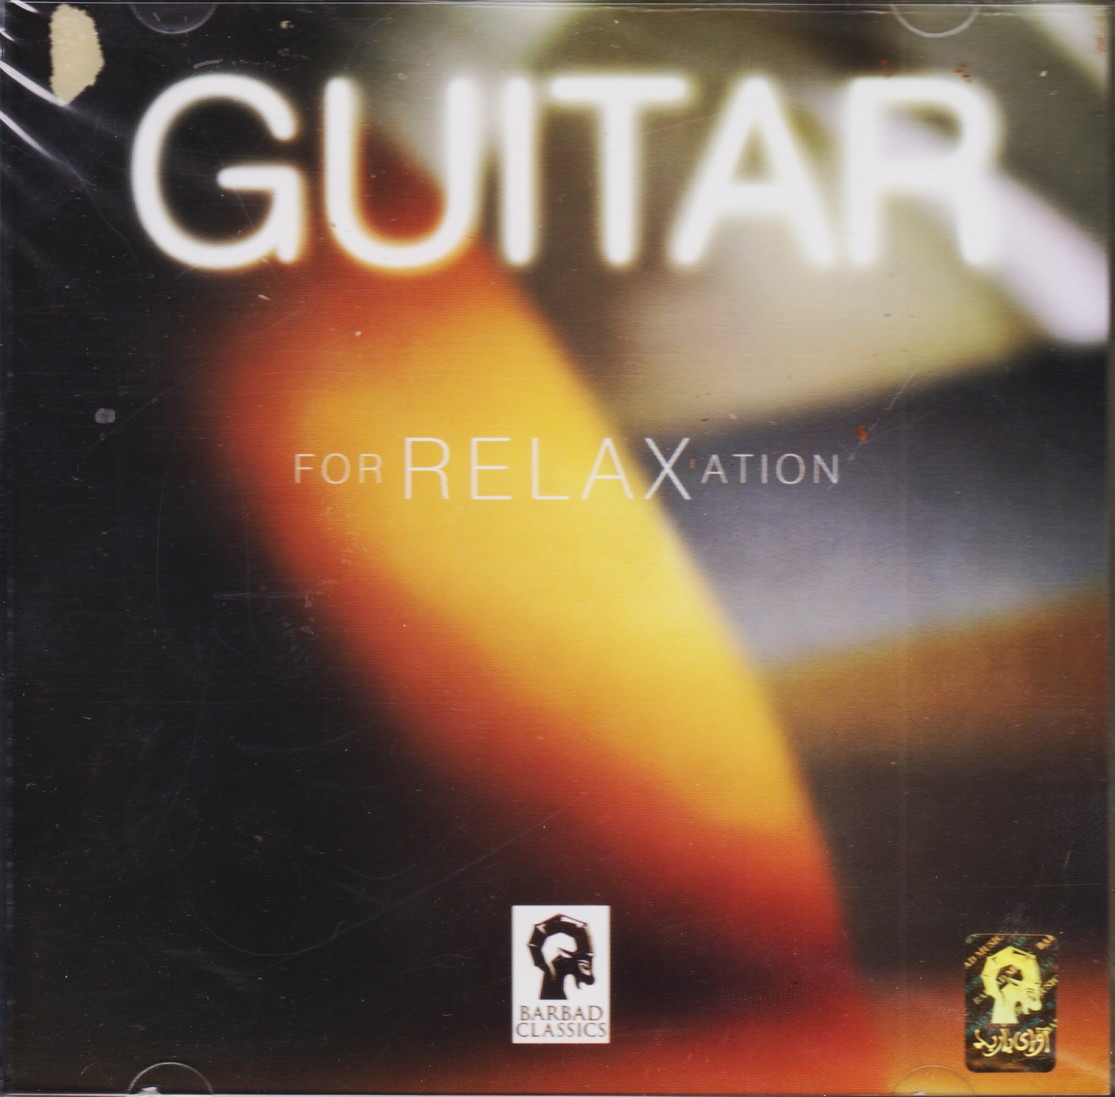 GUITAR for relaxtion